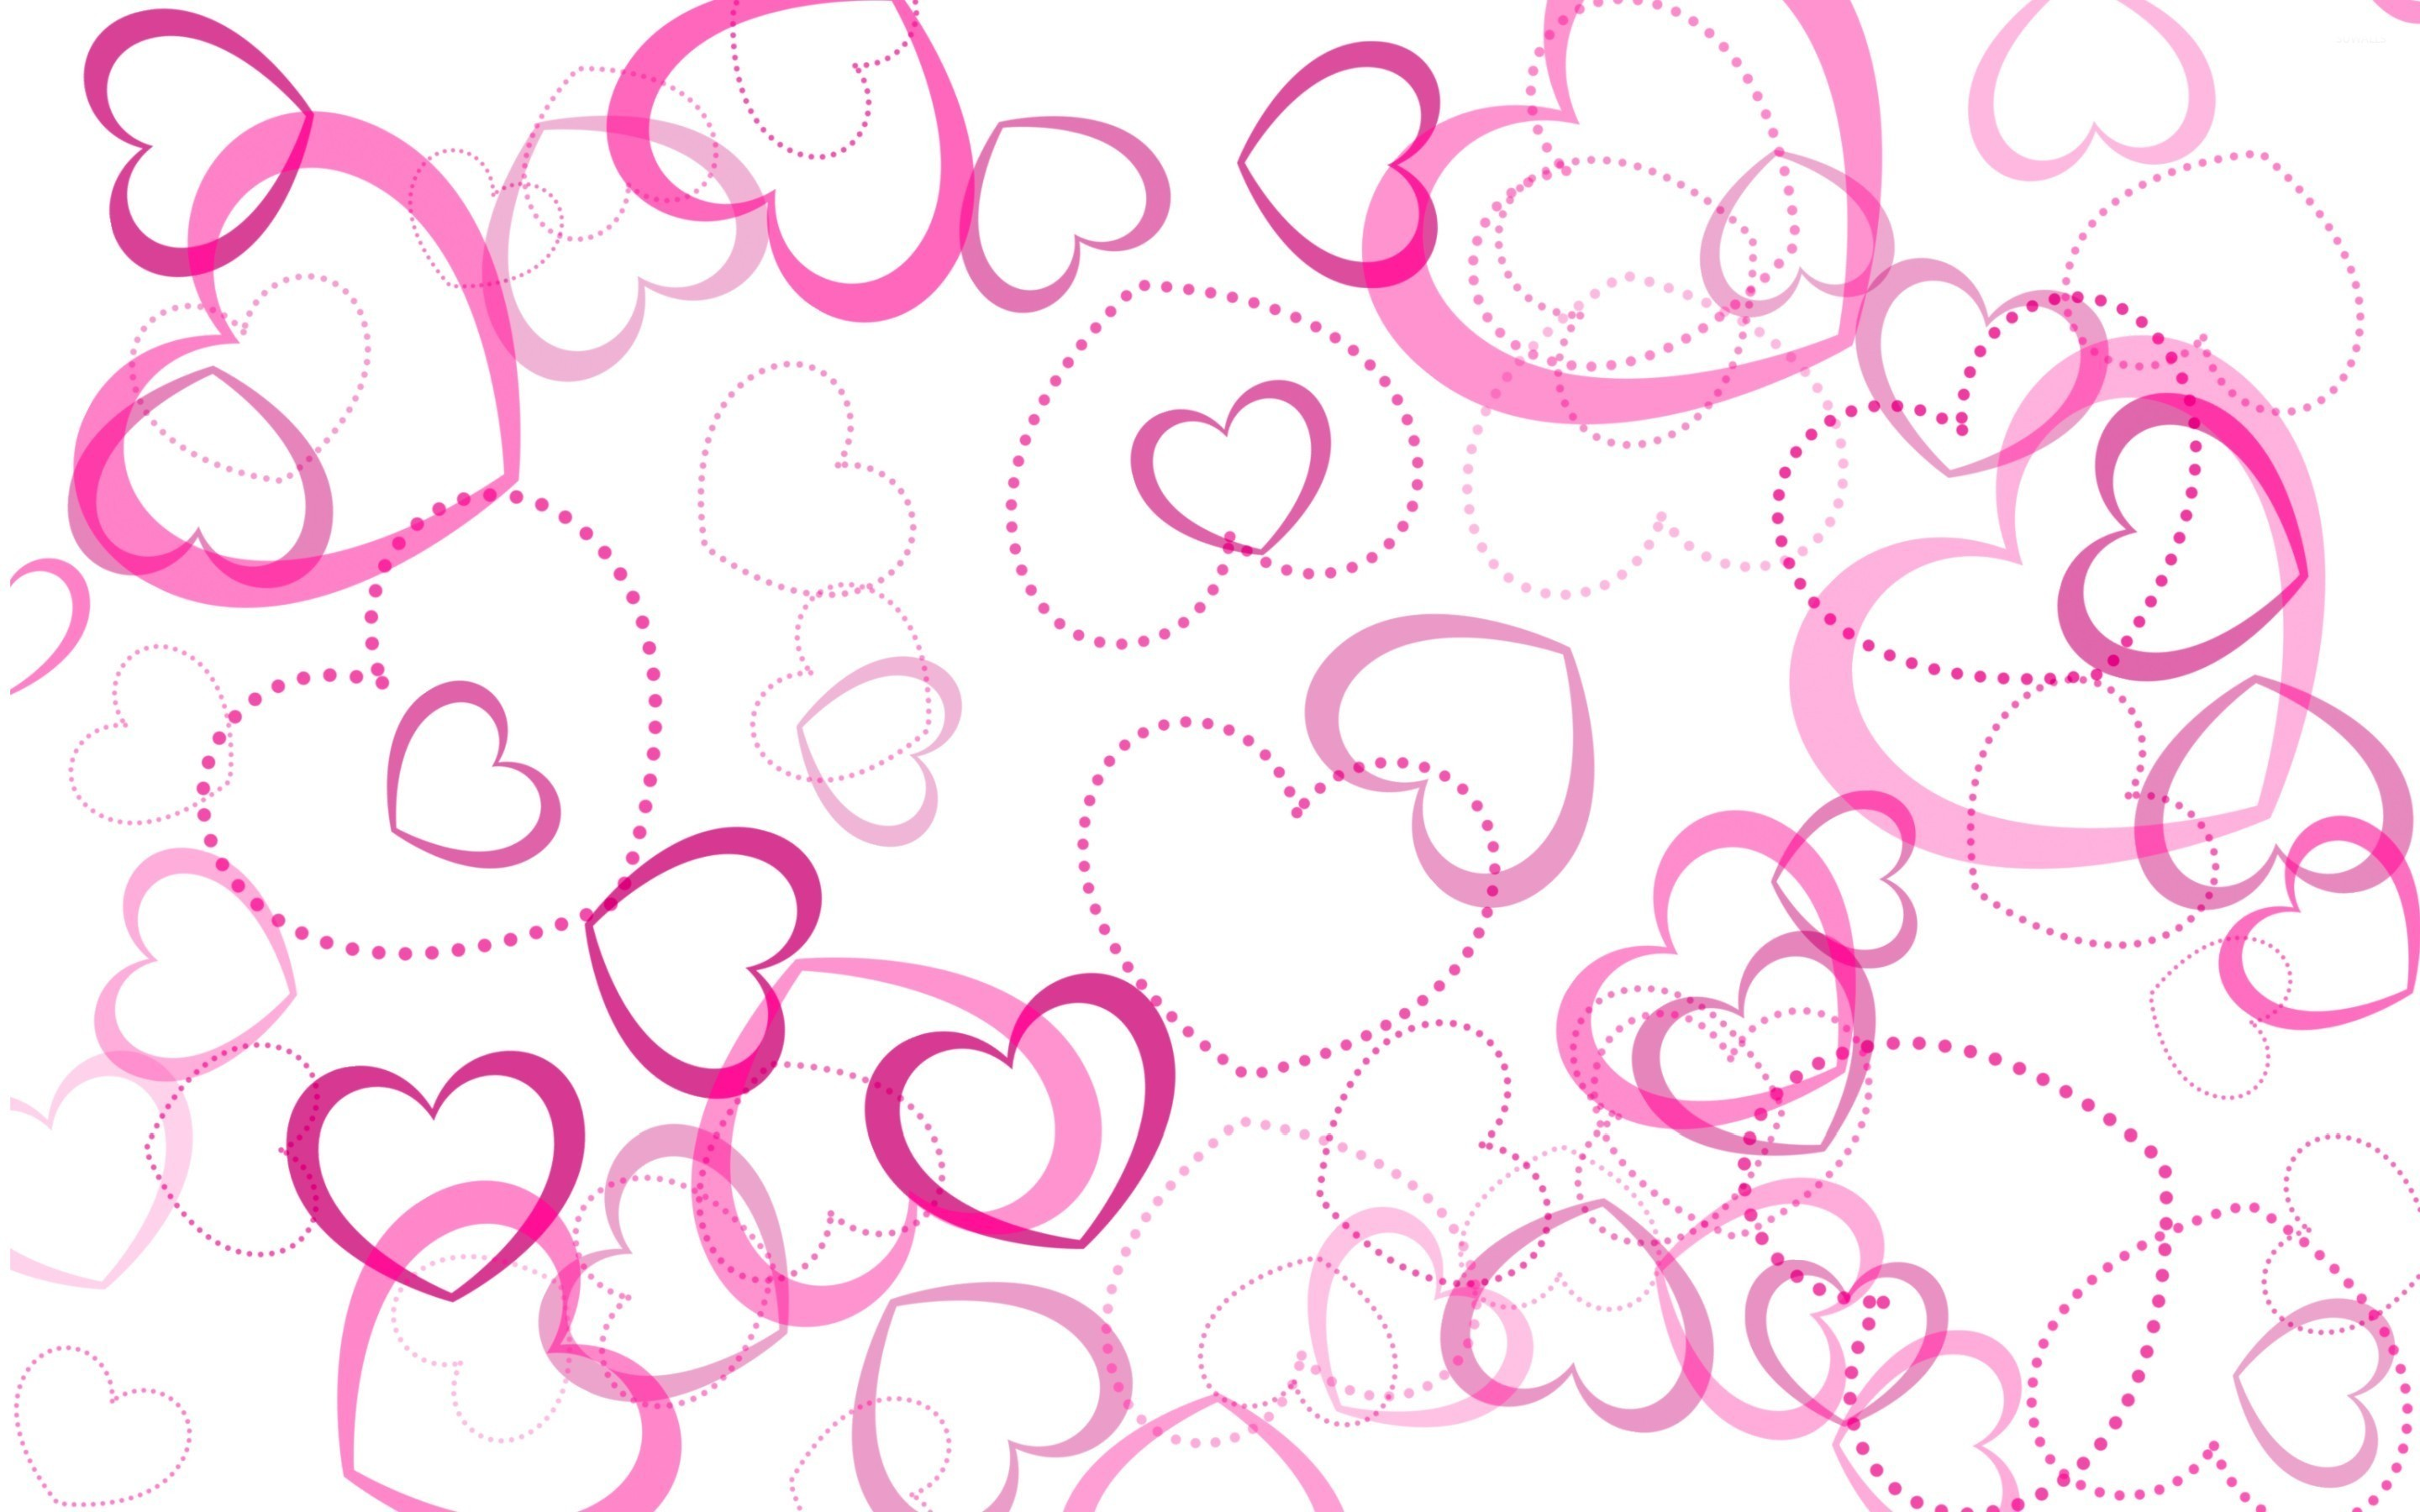 2880x1800 Pink hearts wallpaper